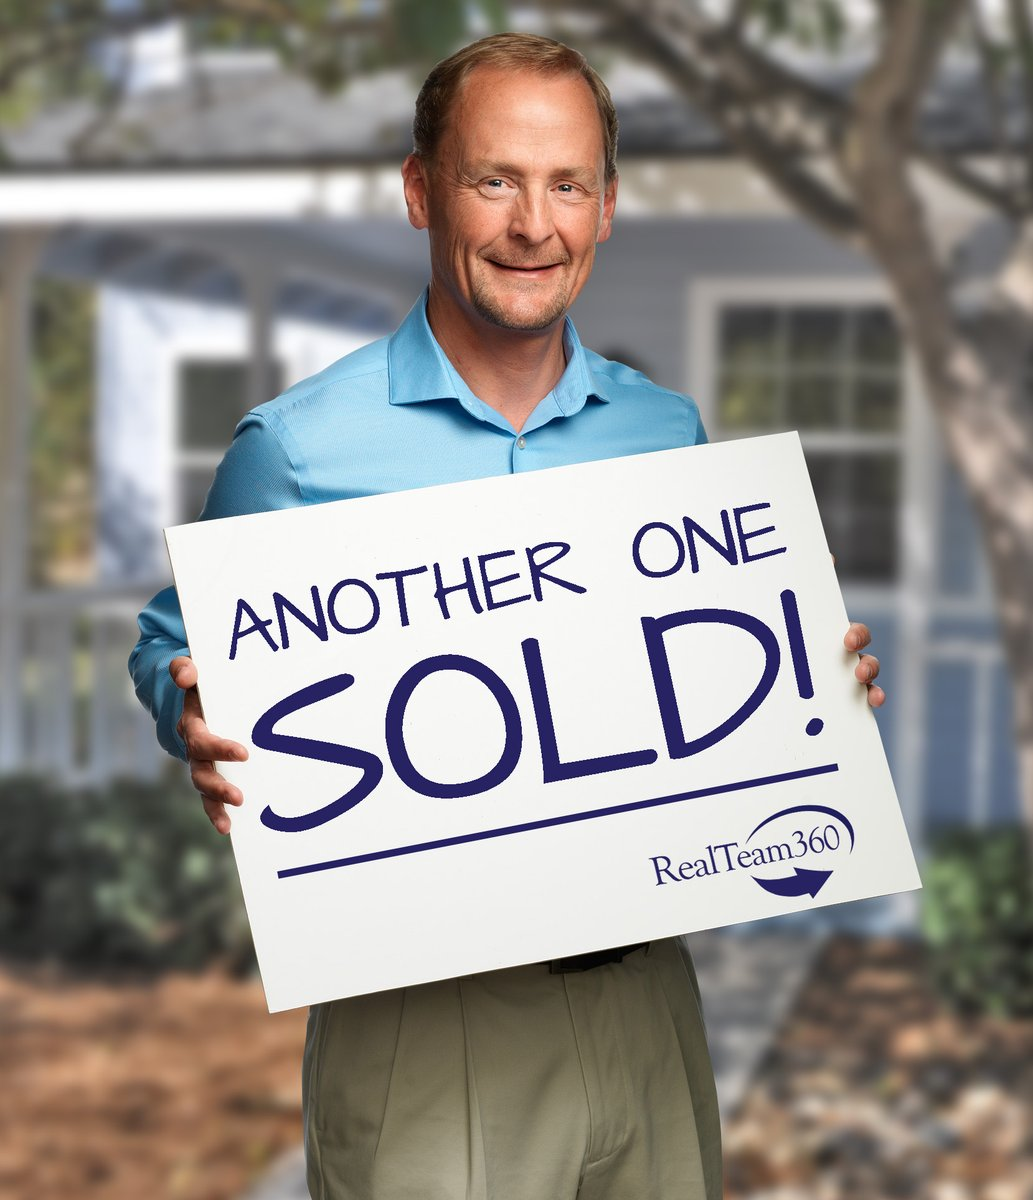 Congratulations to Brian Thorndyke for closing on Mustang Springs! #realestate #REMAX #realstateagent pic.twitter.com/7txnjiKffU